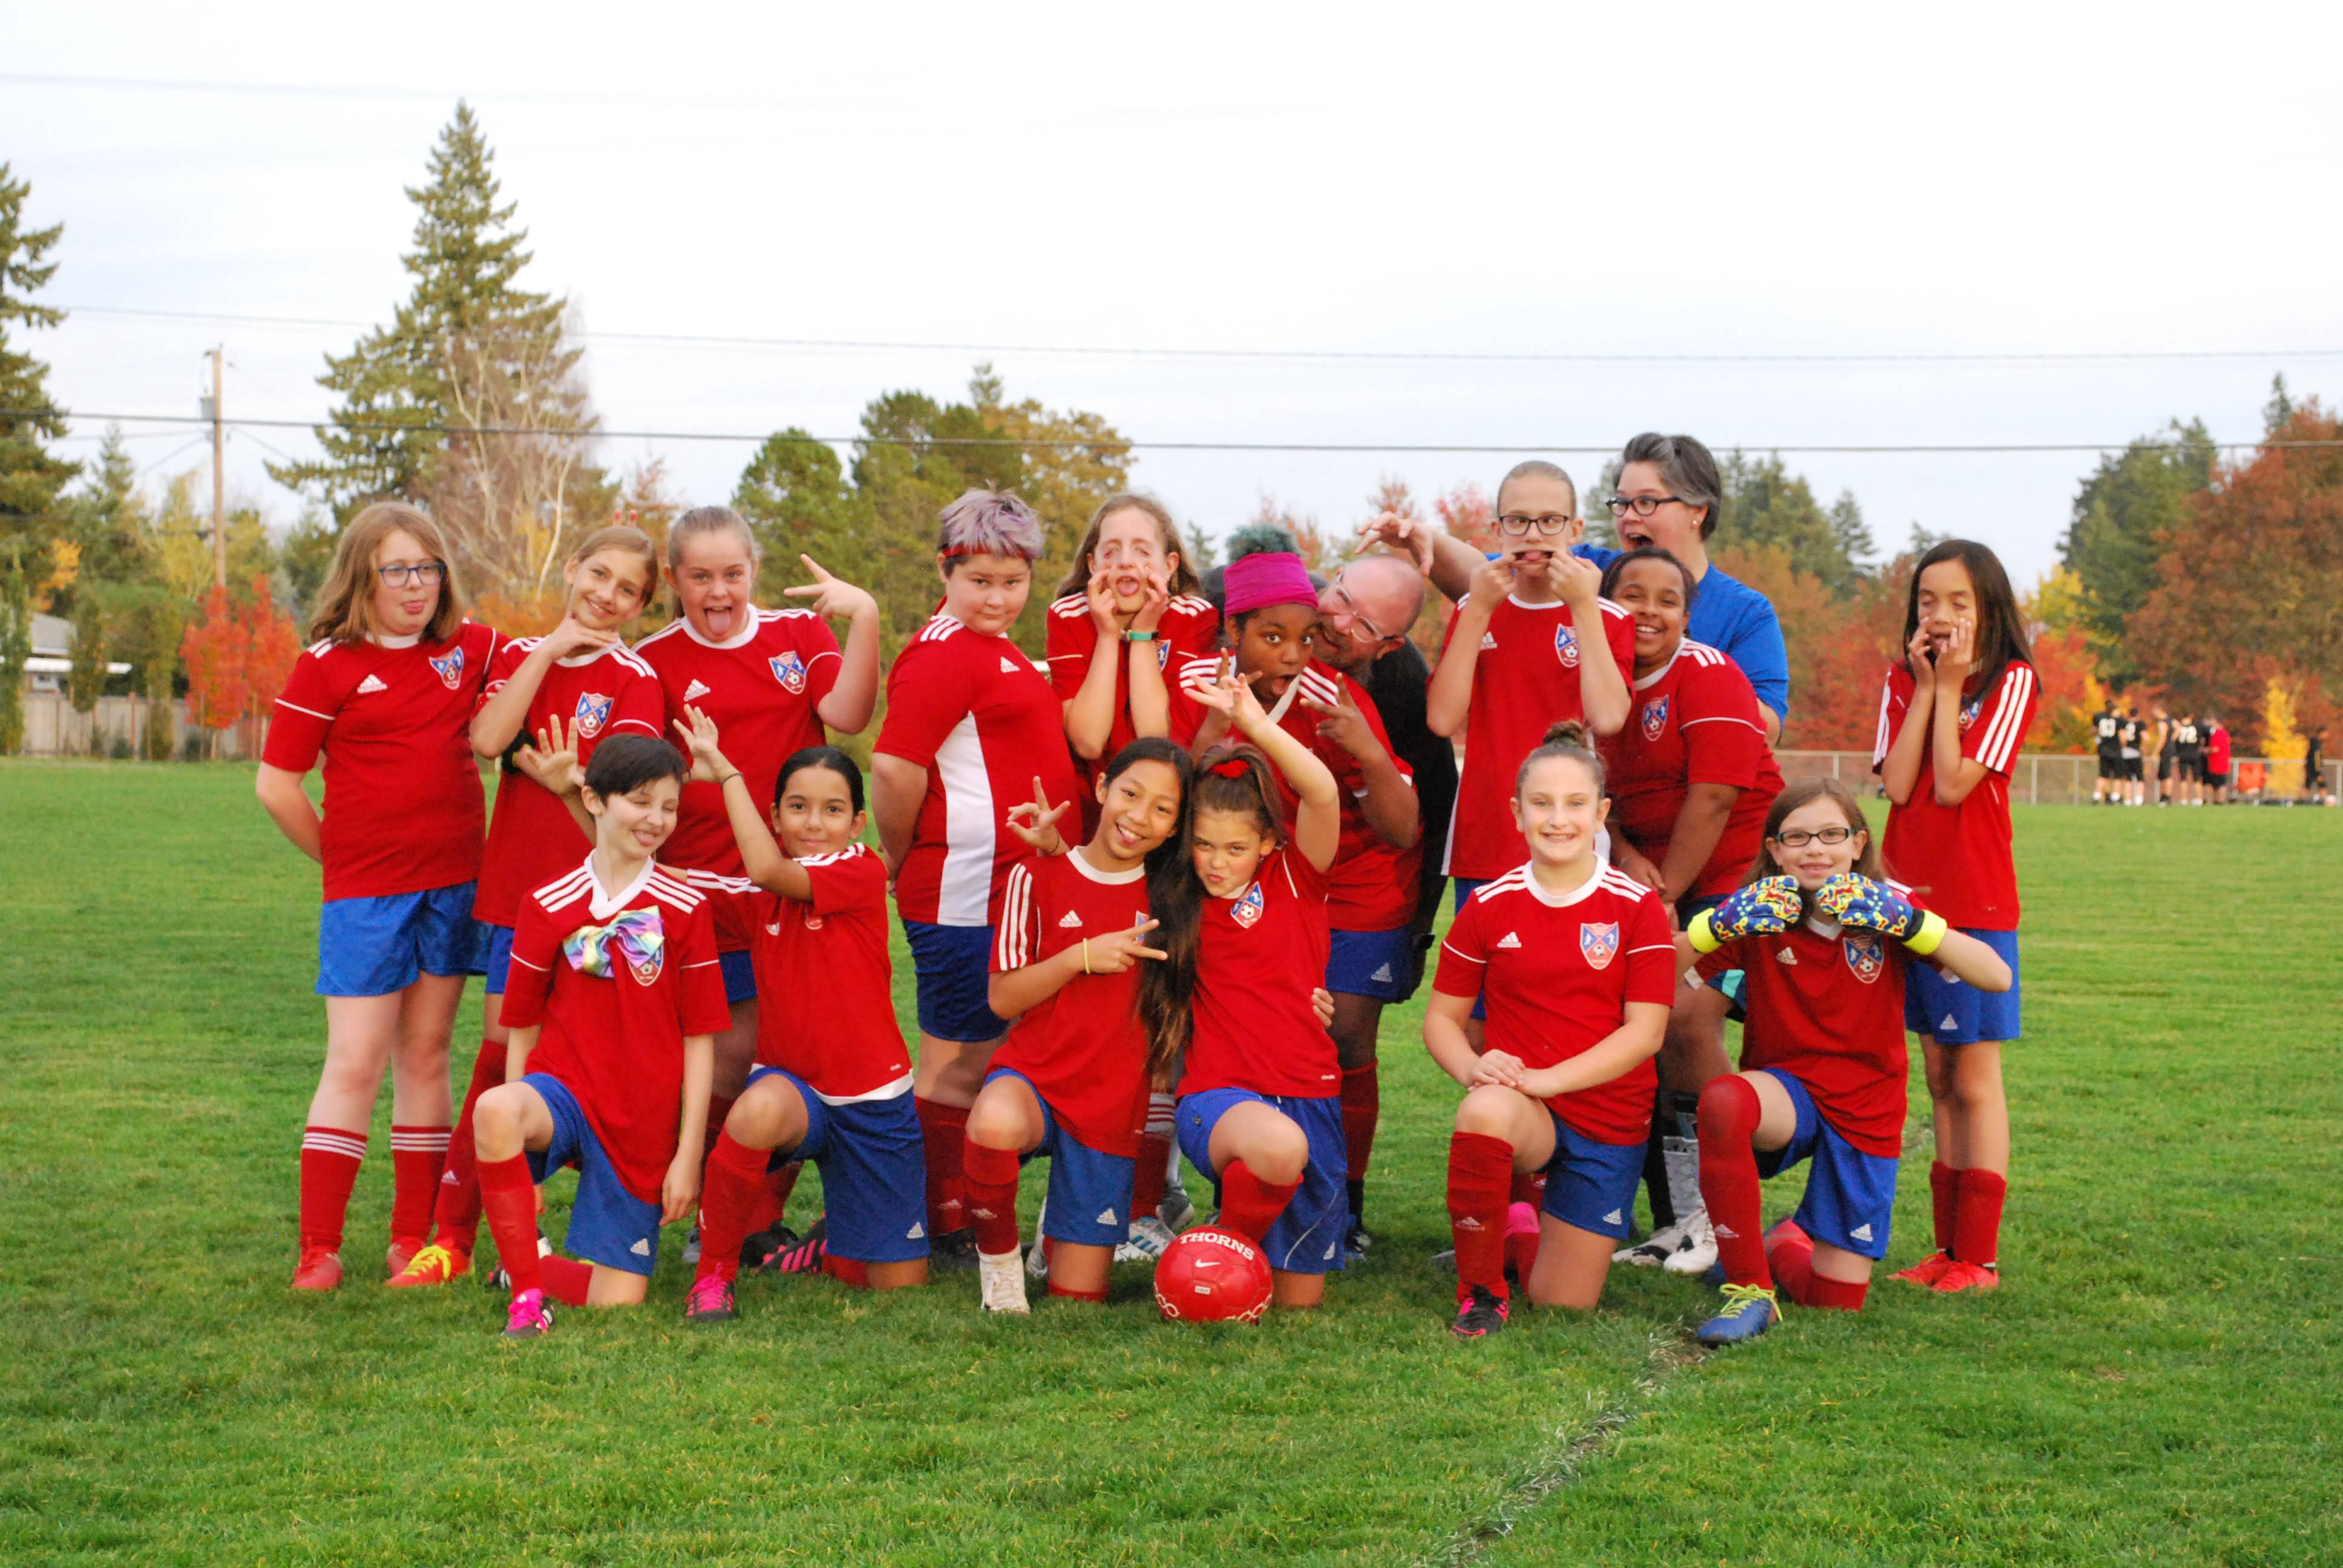 U-11 girls soccer team photo with goofy faces